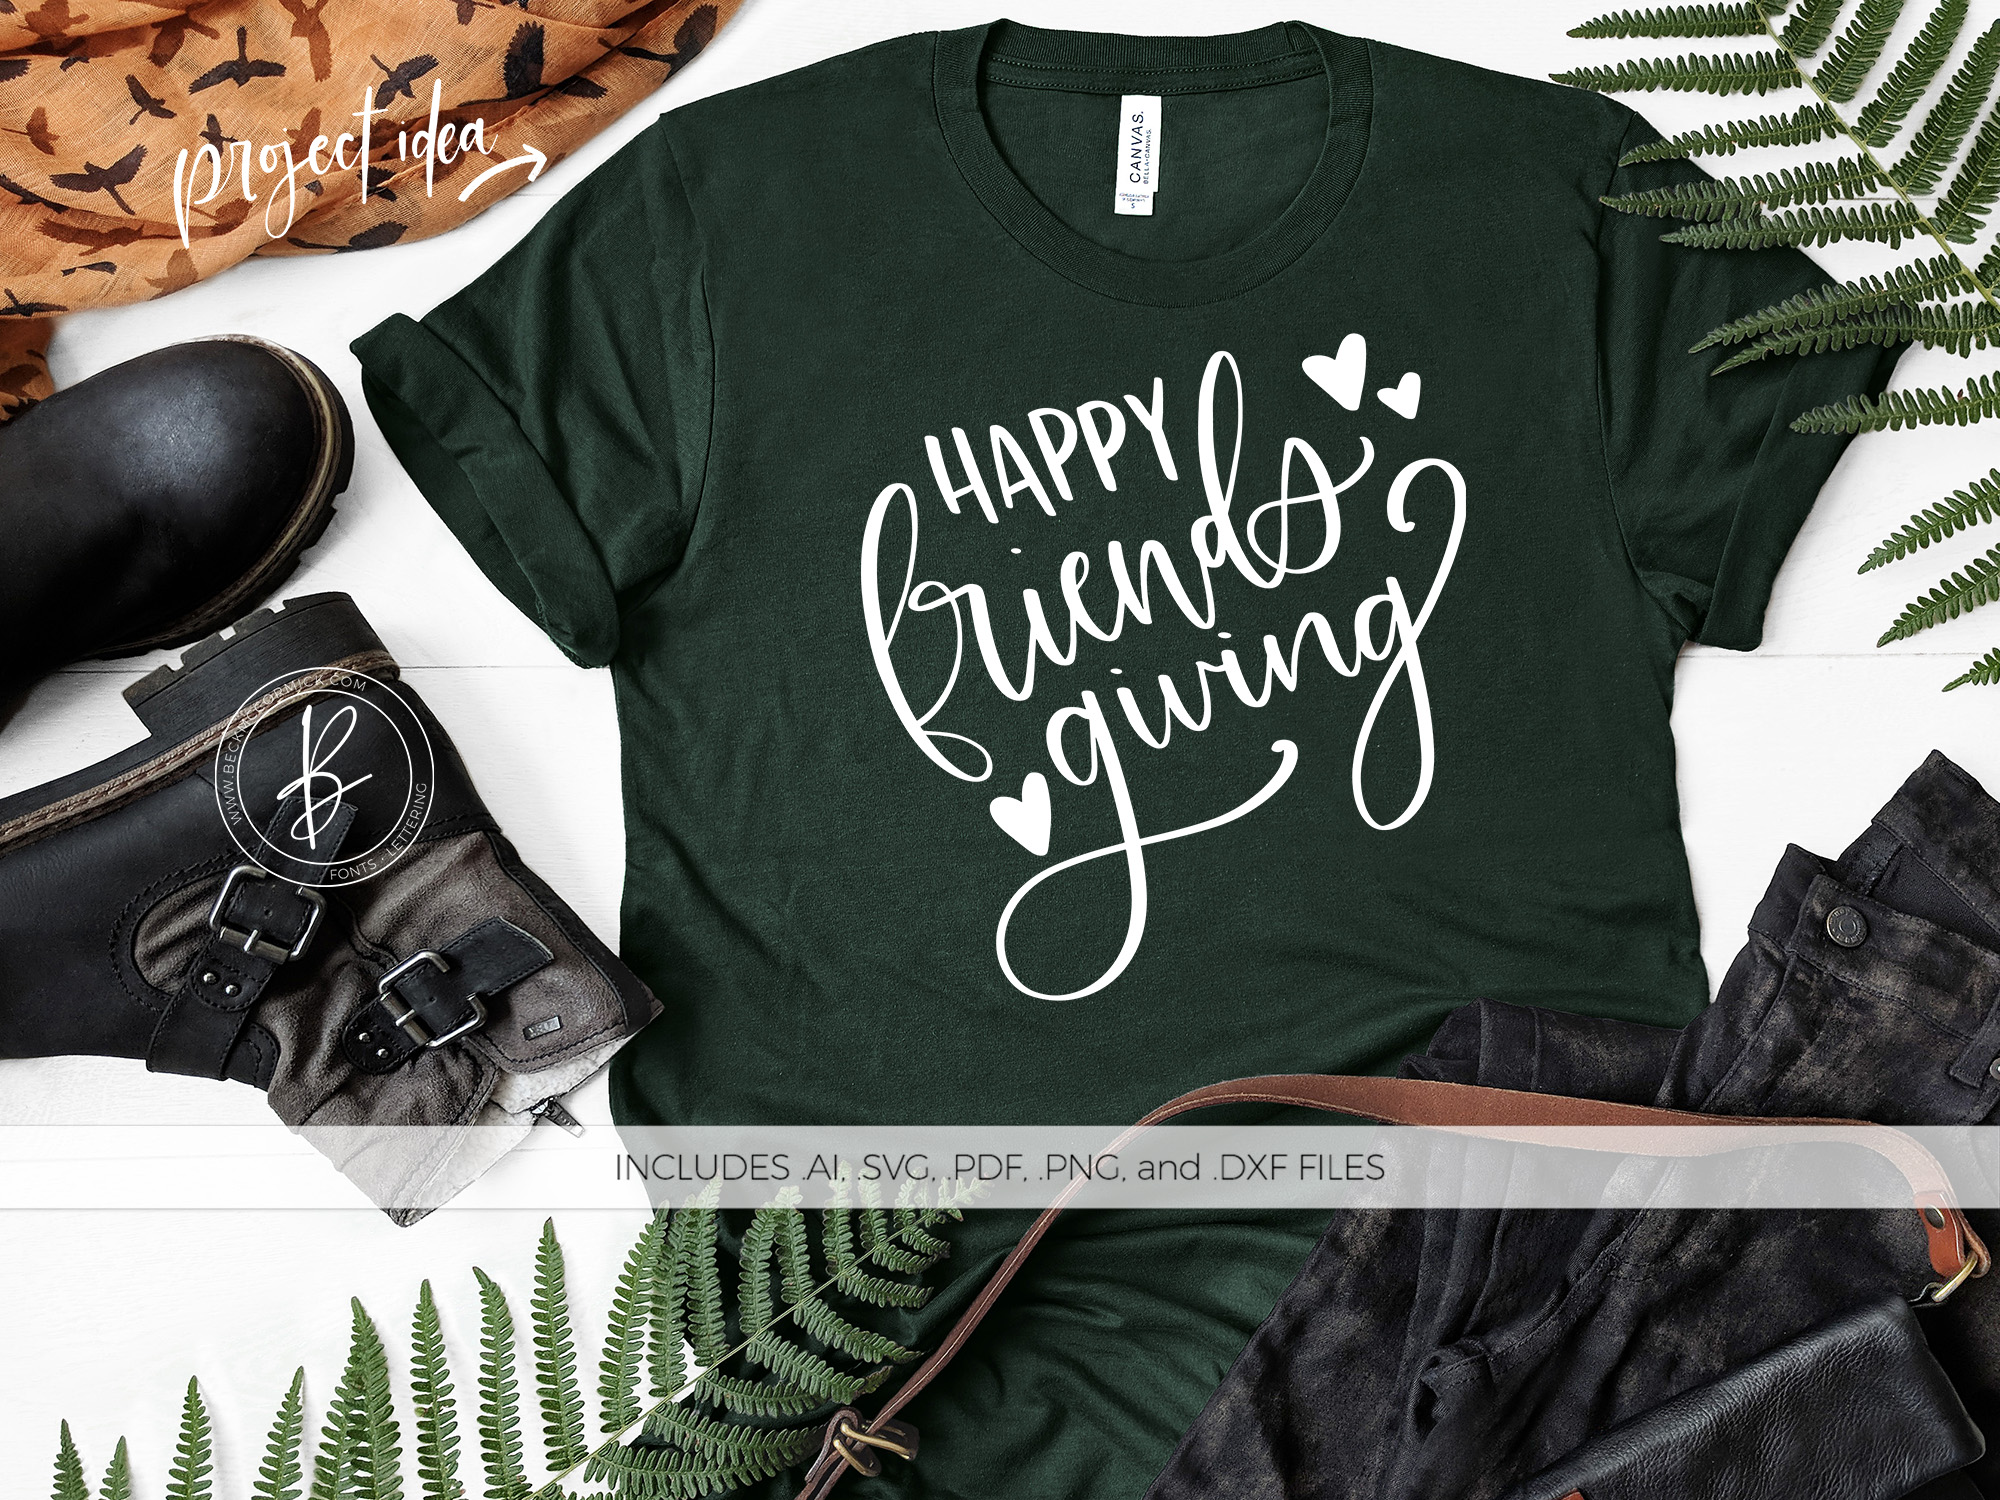 Download Free Happy Friendsgiving Graphic By Beckmccormick Creative Fabrica for Cricut Explore, Silhouette and other cutting machines.